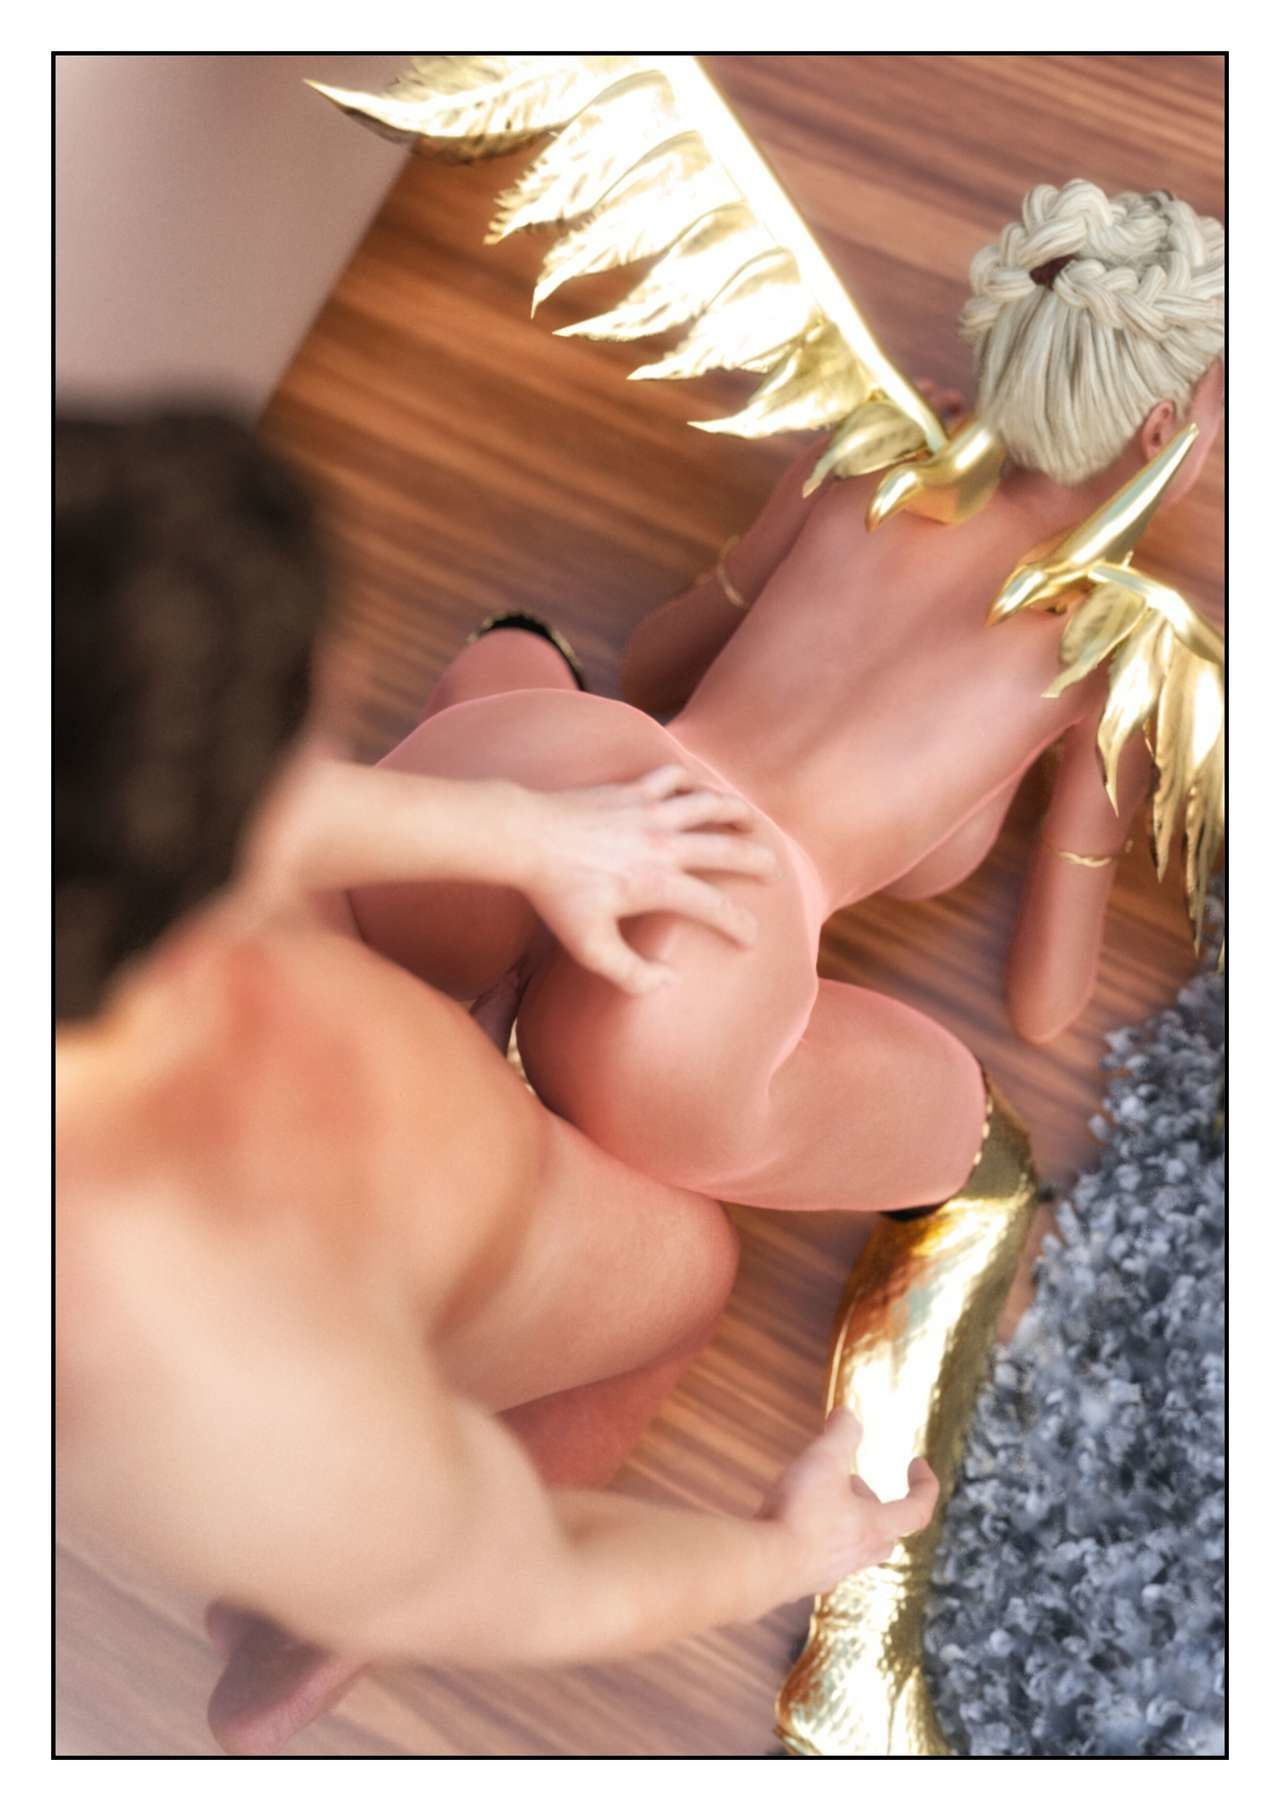 seduced by an angel - part 2